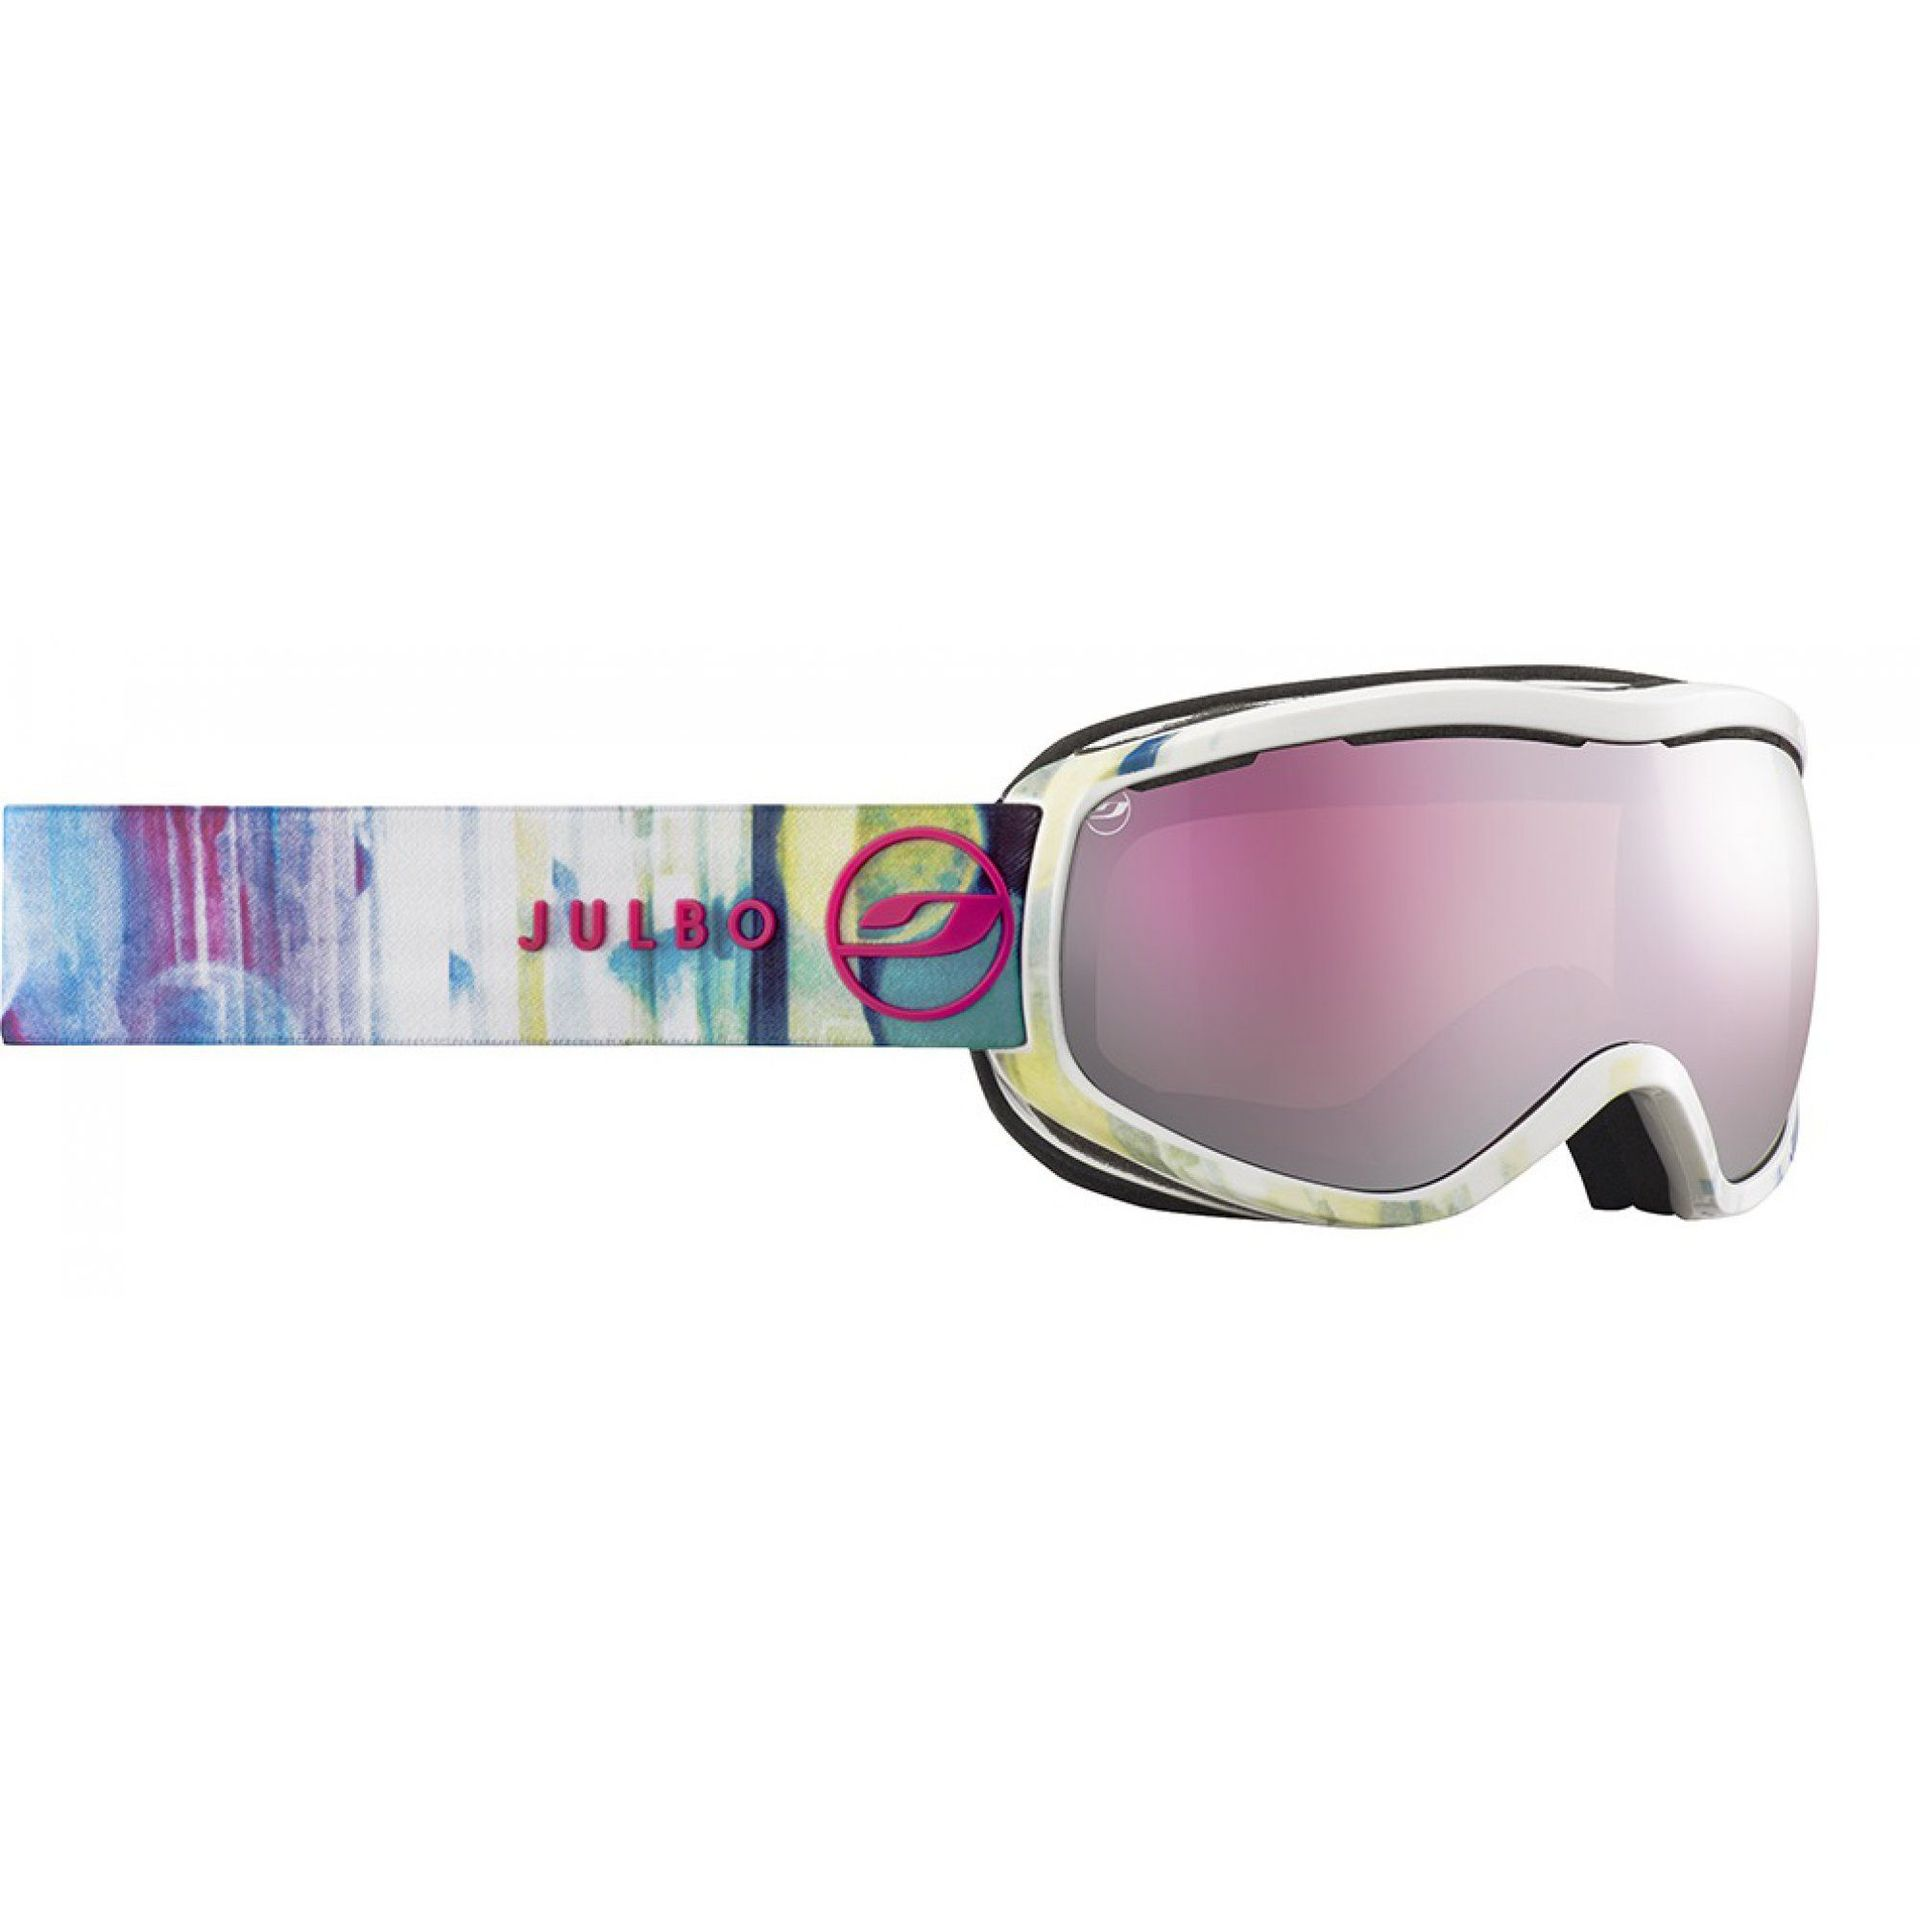 GOGLE JULBO EQUINOX WHITE|PINK SCREEN|SILVER FLASH SPECRON